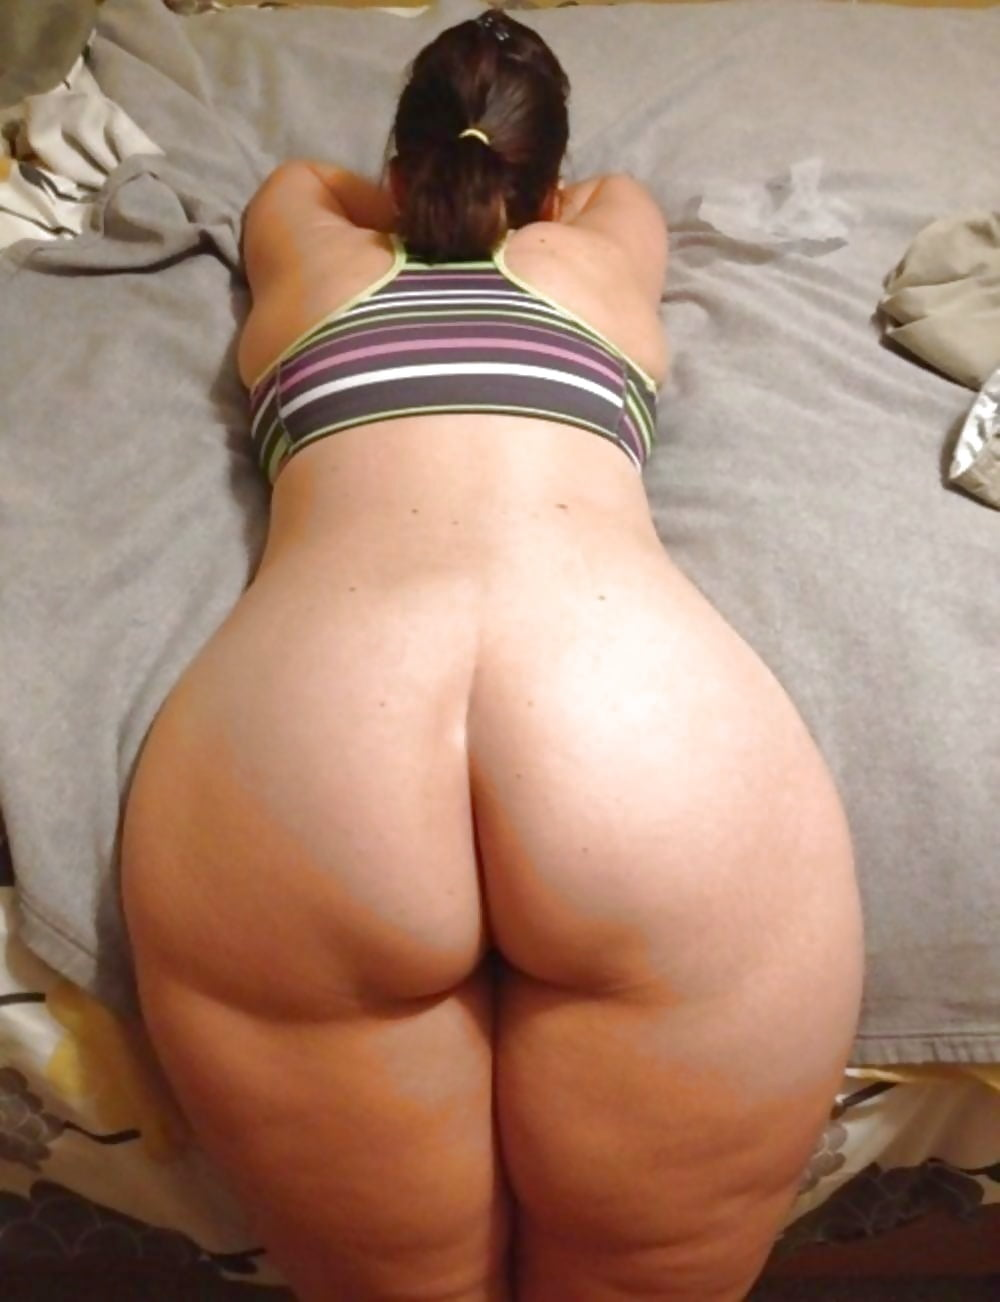 Wide  Very Wide Hips 2 - 49 Pics - Xhamstercom-7211